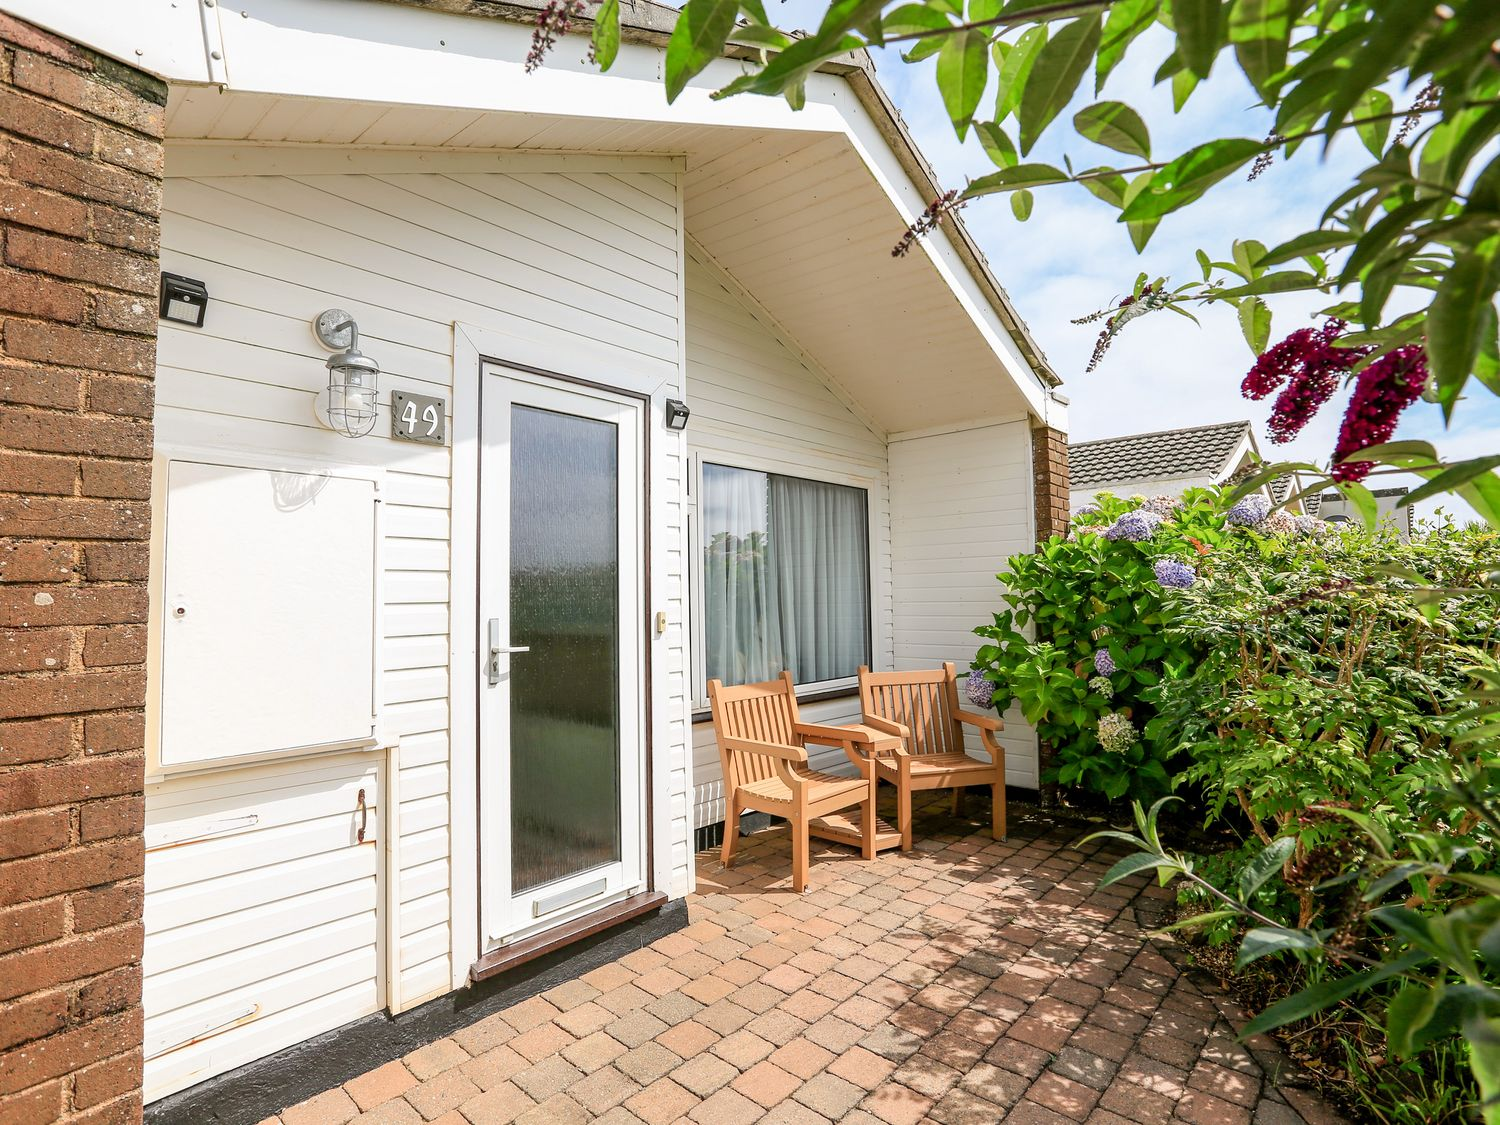 49 Cumber Close - Devon - 995046 - photo 1